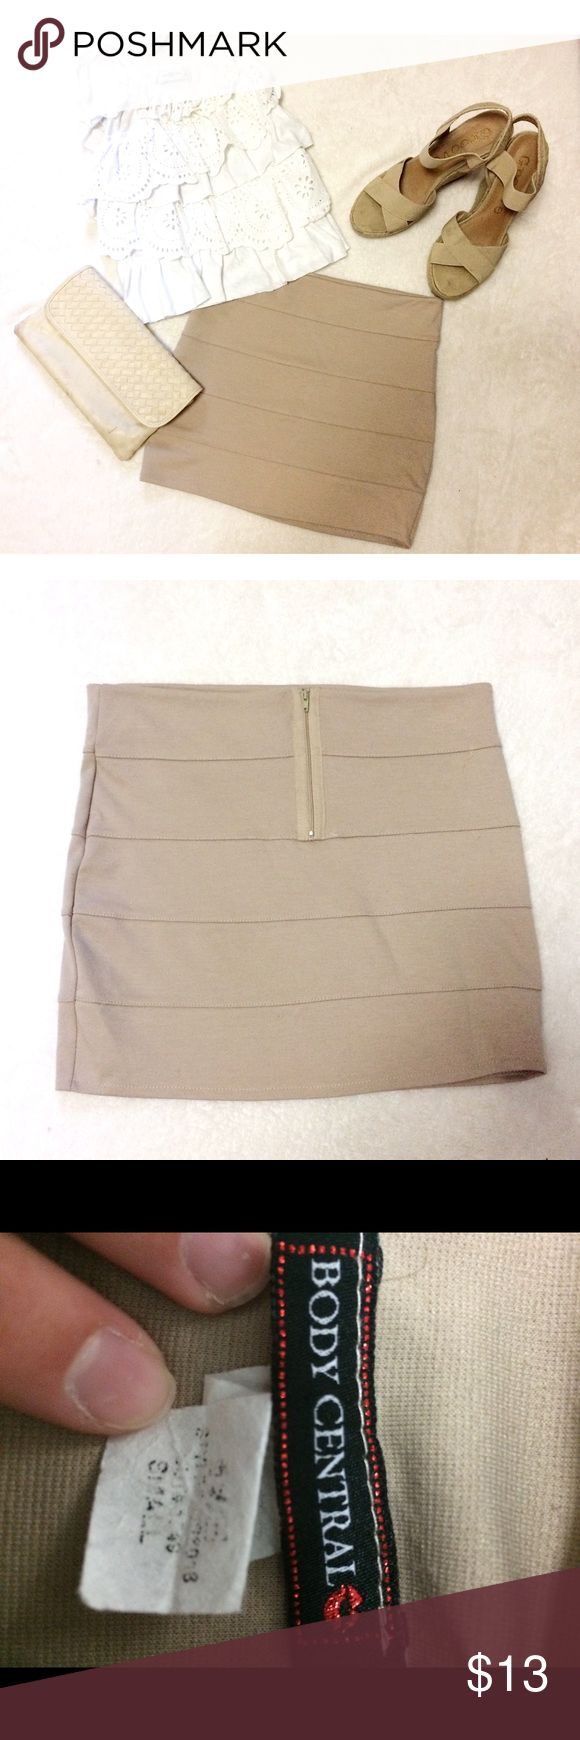 Body Central SZ Small Tan Bodycon Skirt miniskirt Super cute short, tan, bodycon miniskirt from Body Central. Barely worn, like new. Zipper in the back, and the skirt had lots of stretch. The color goes well with pretty much everything! (Skirt only) Body Central Skirts Mini